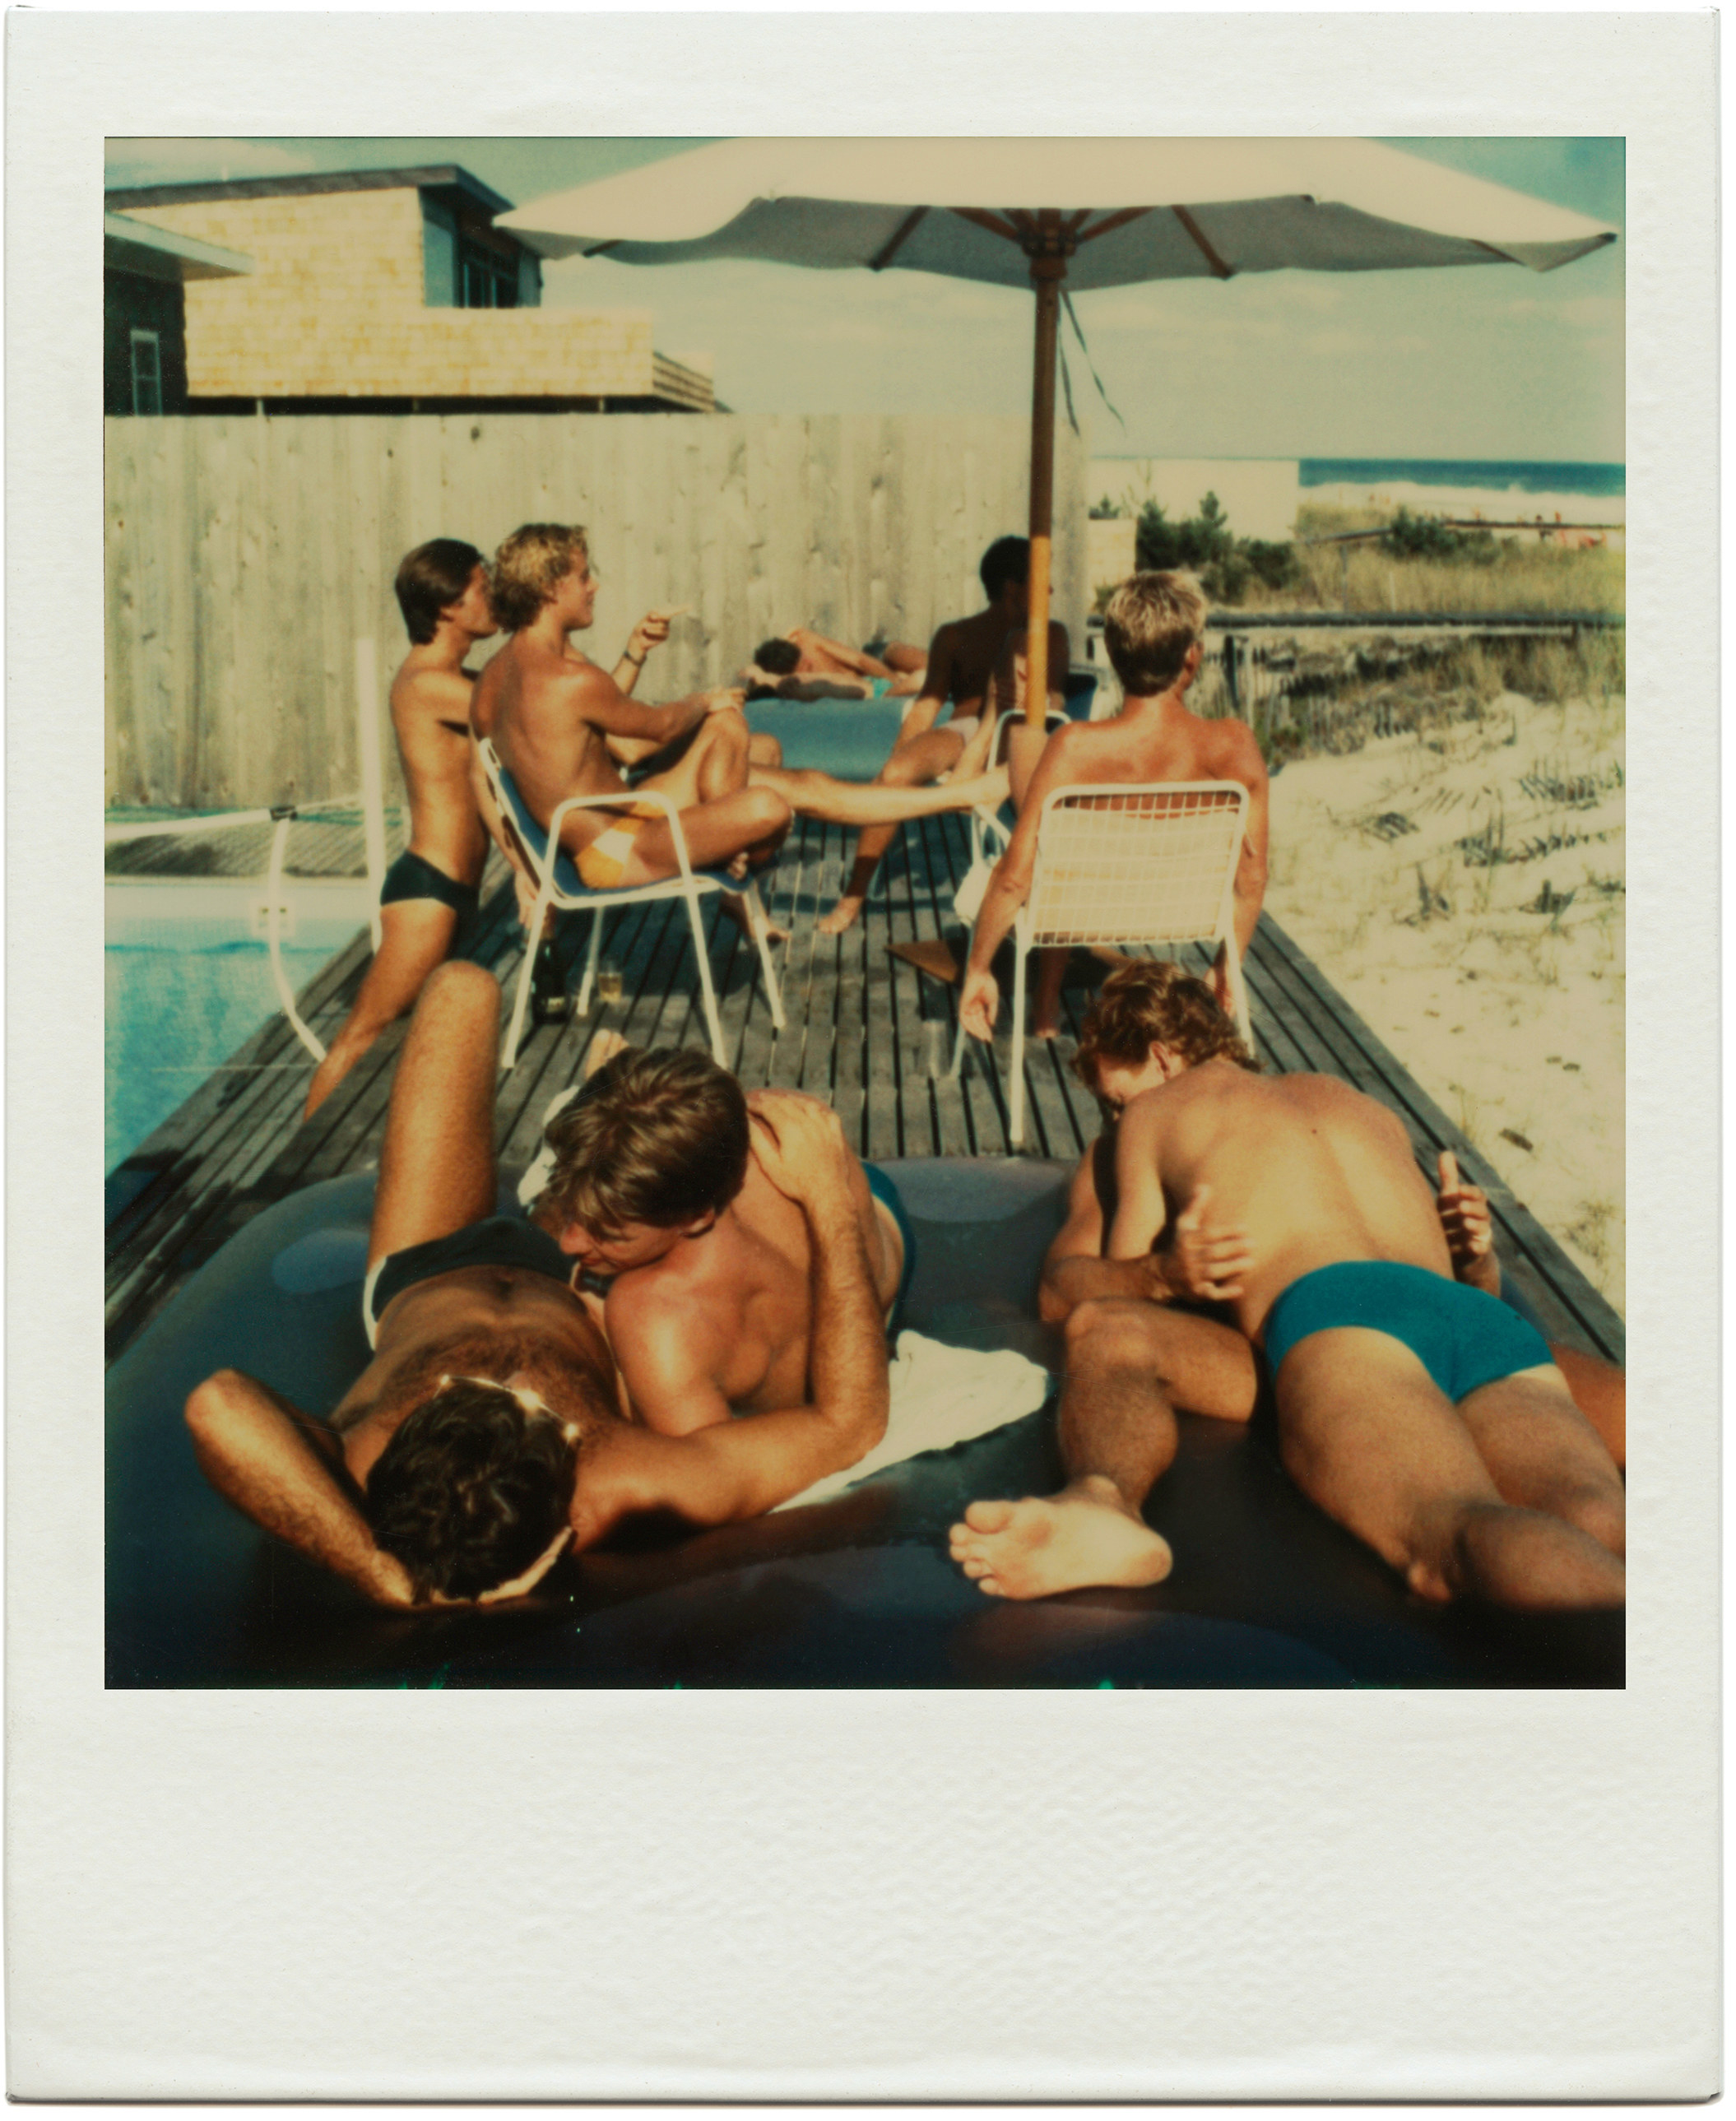 A polaroid provided by the artist Tom Bianchi of a group of men hanging by a pool